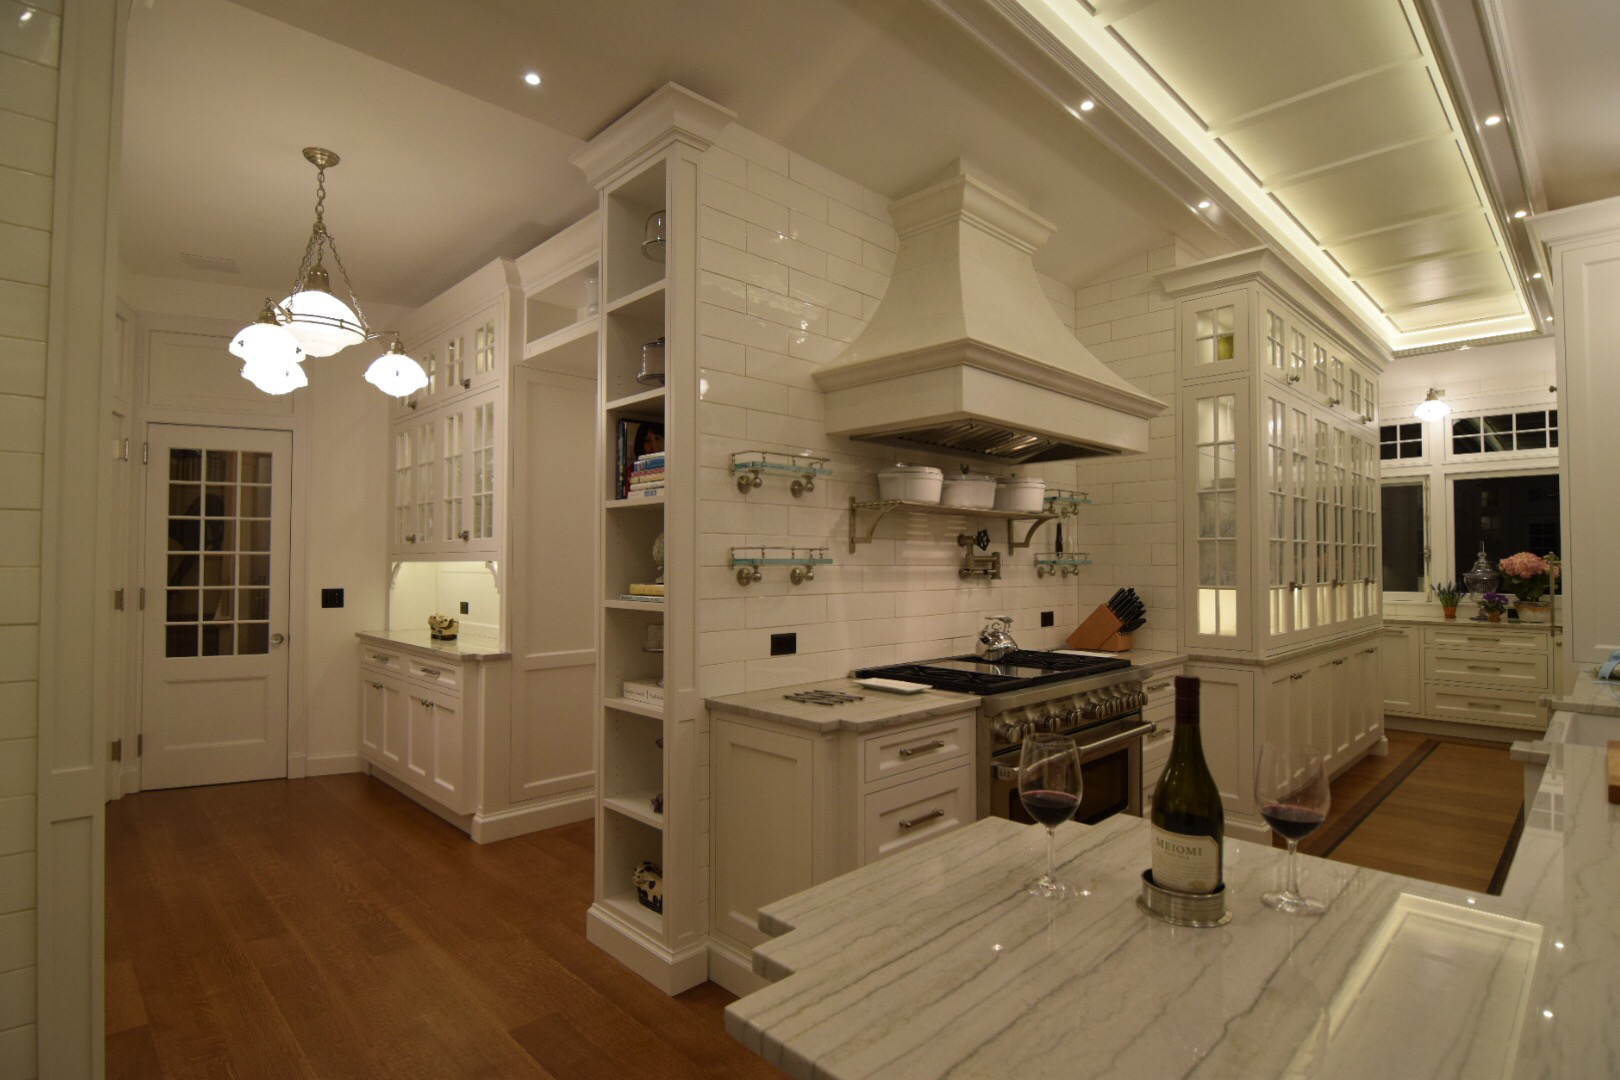 traditional-custom-kitchen-with-1890-style-custom-architectural-doors.jpg